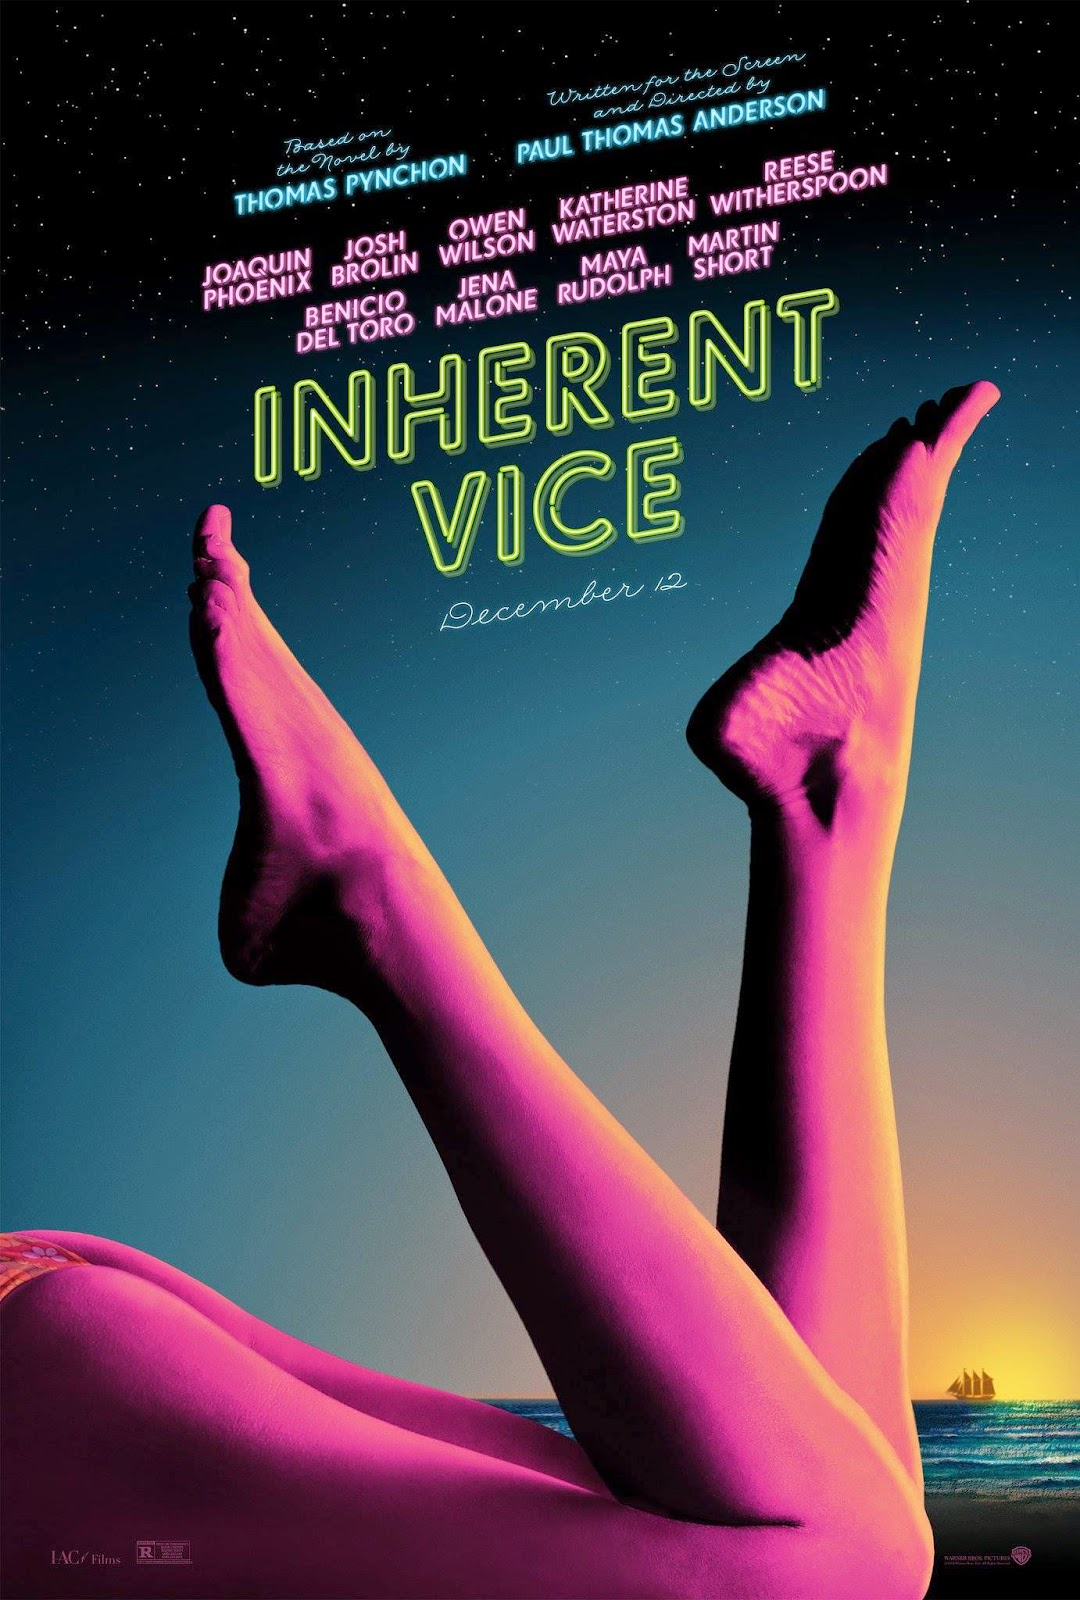 20140930063346inherent_vice_film_poster.jpg